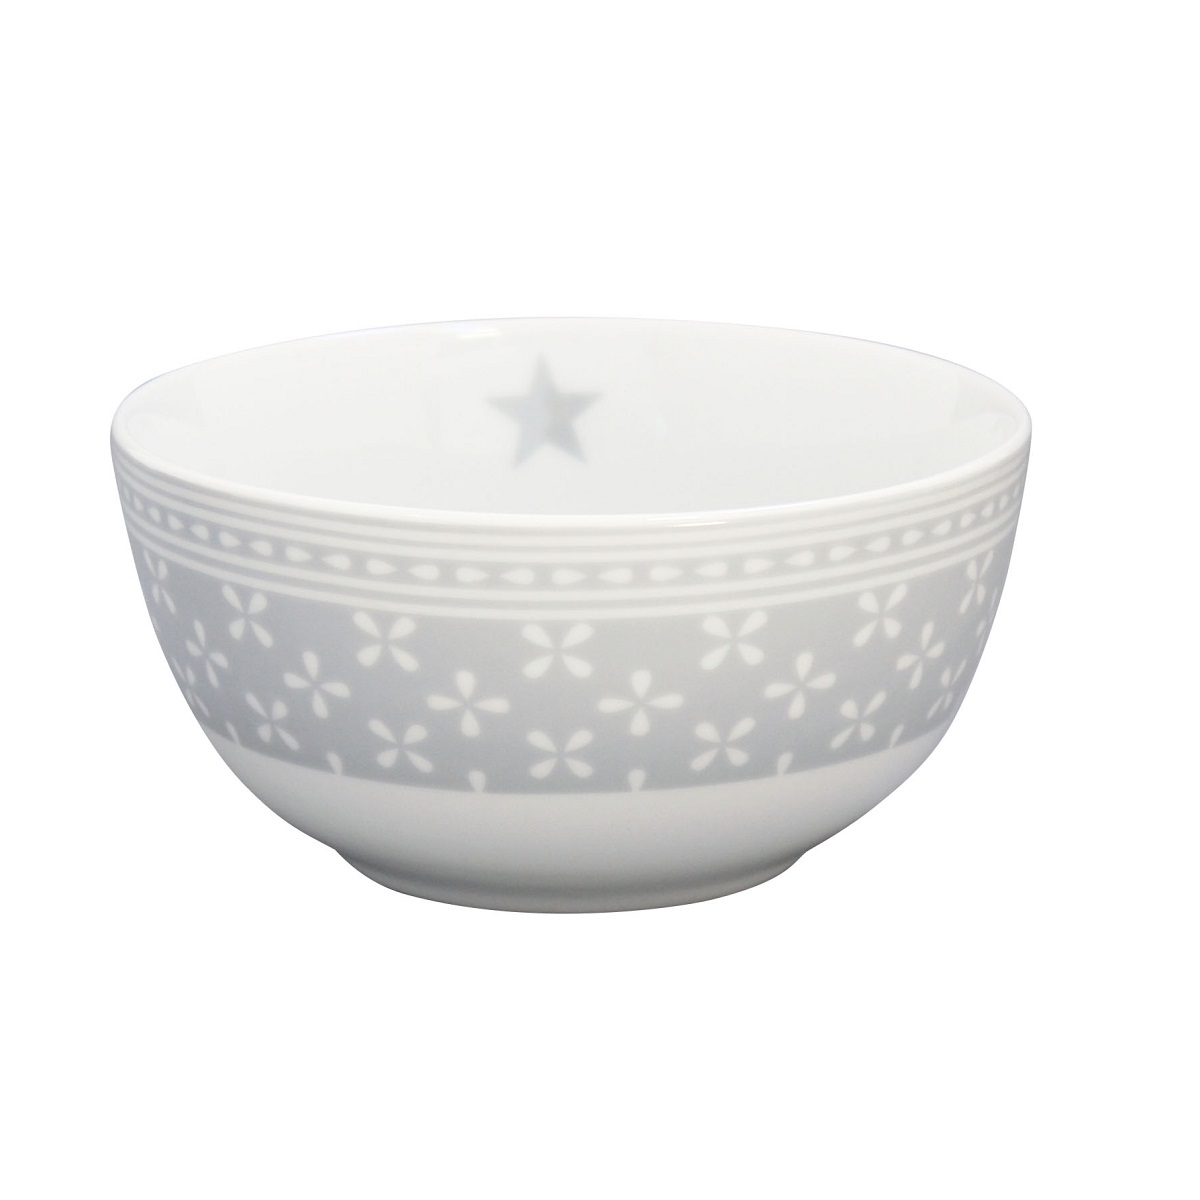 Krasilnikoff Schüssel Happy Bowl Daisy Grey